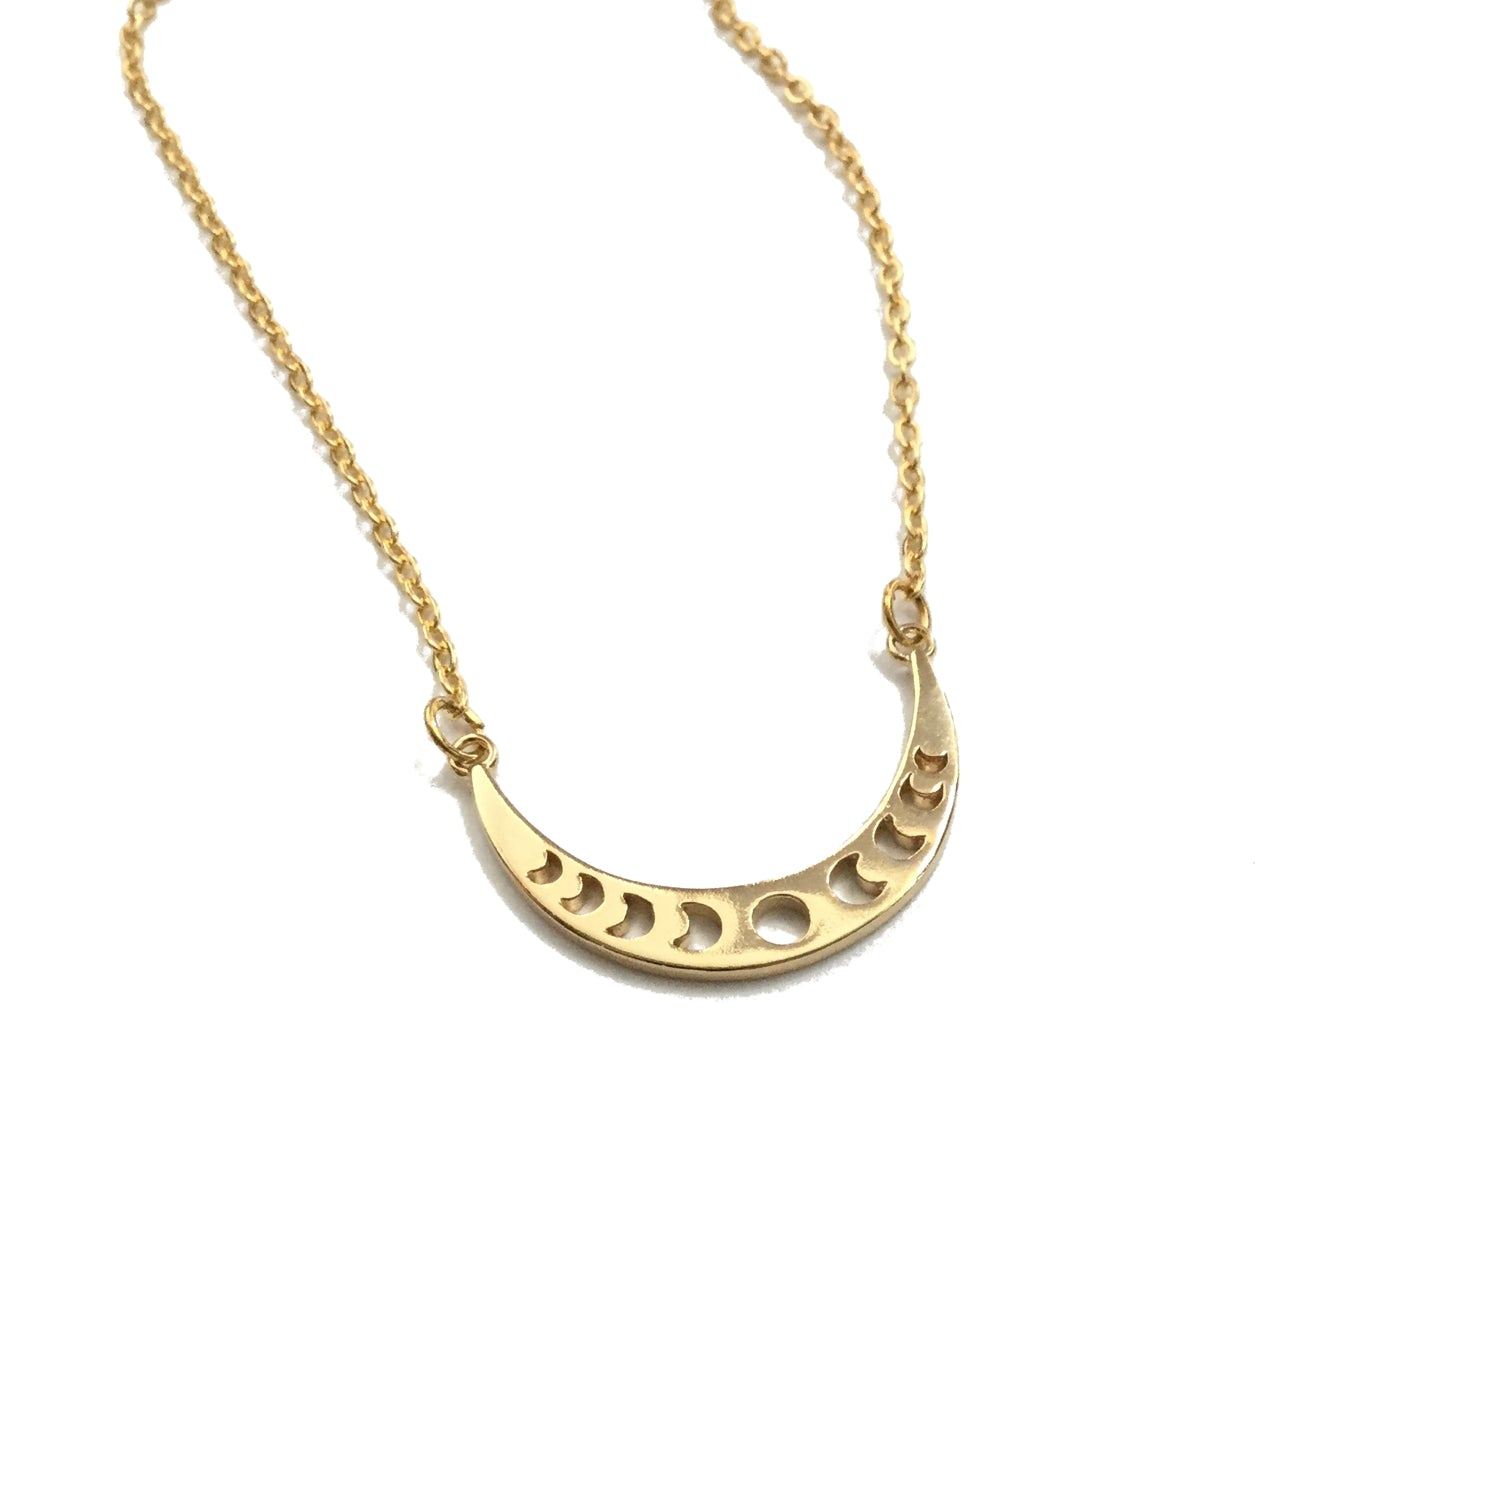 Gold plated moon phase necklace